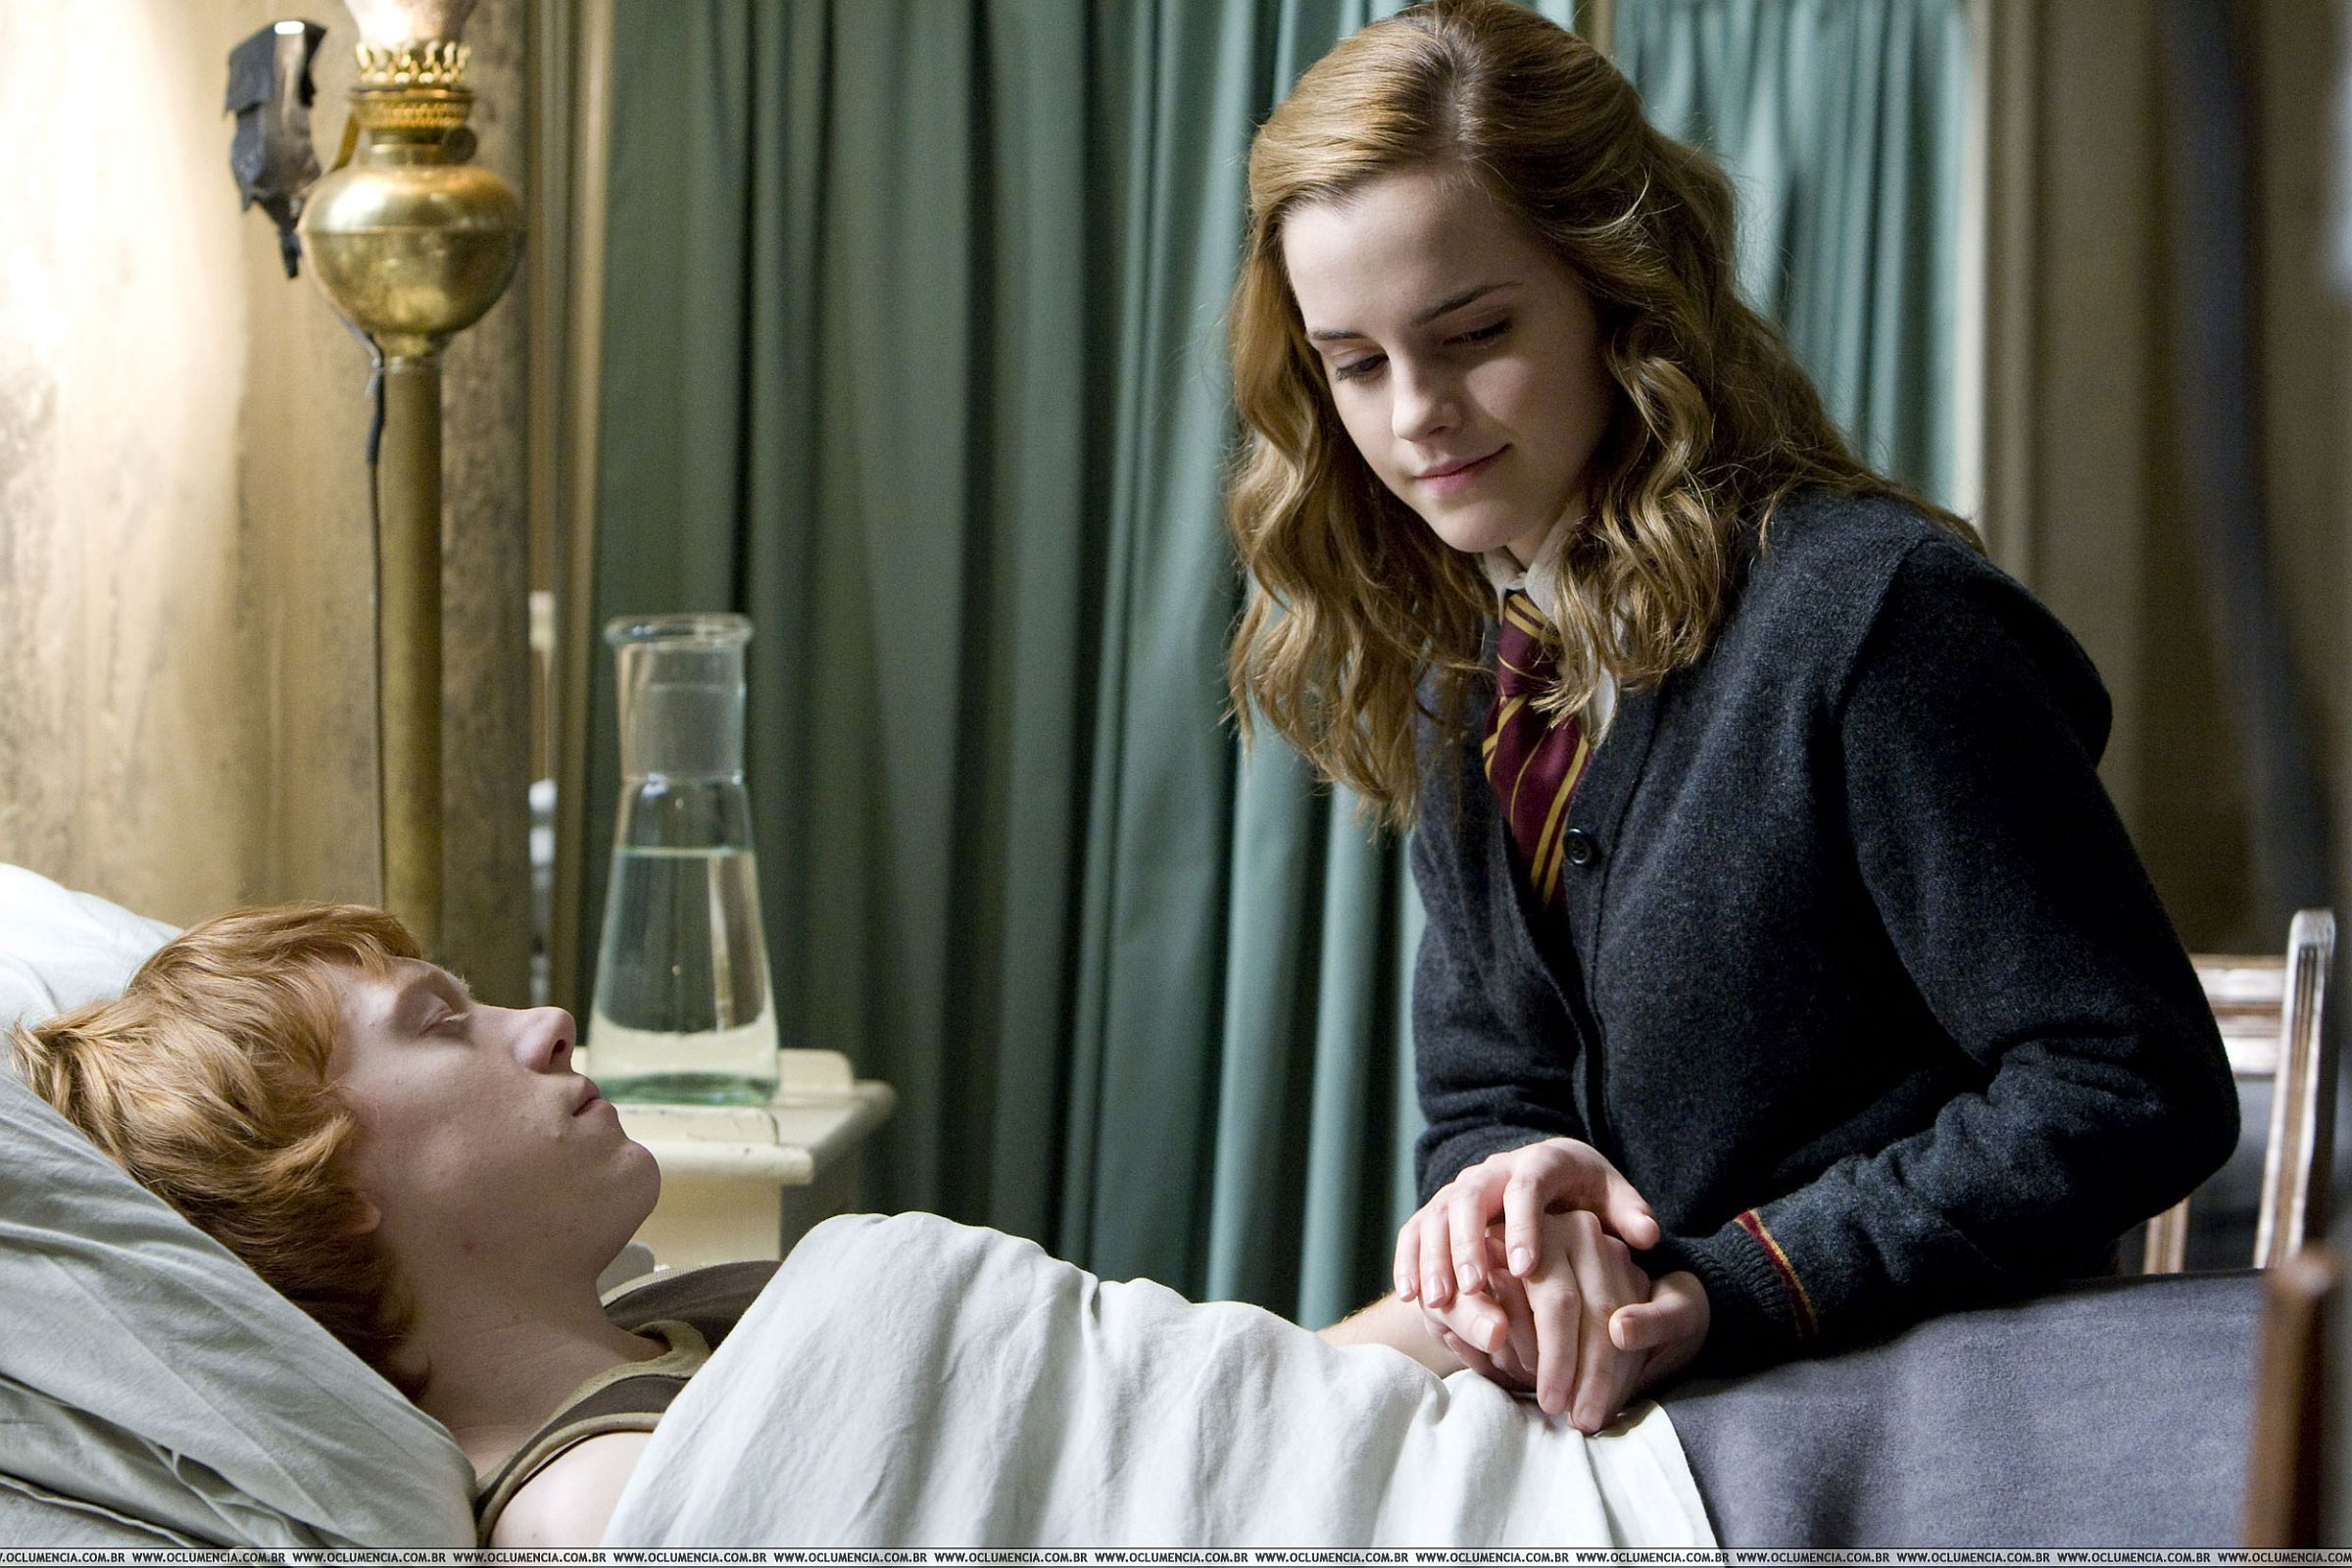 Ron-Hermione-in-HBP-romione-7340802-2400-1600